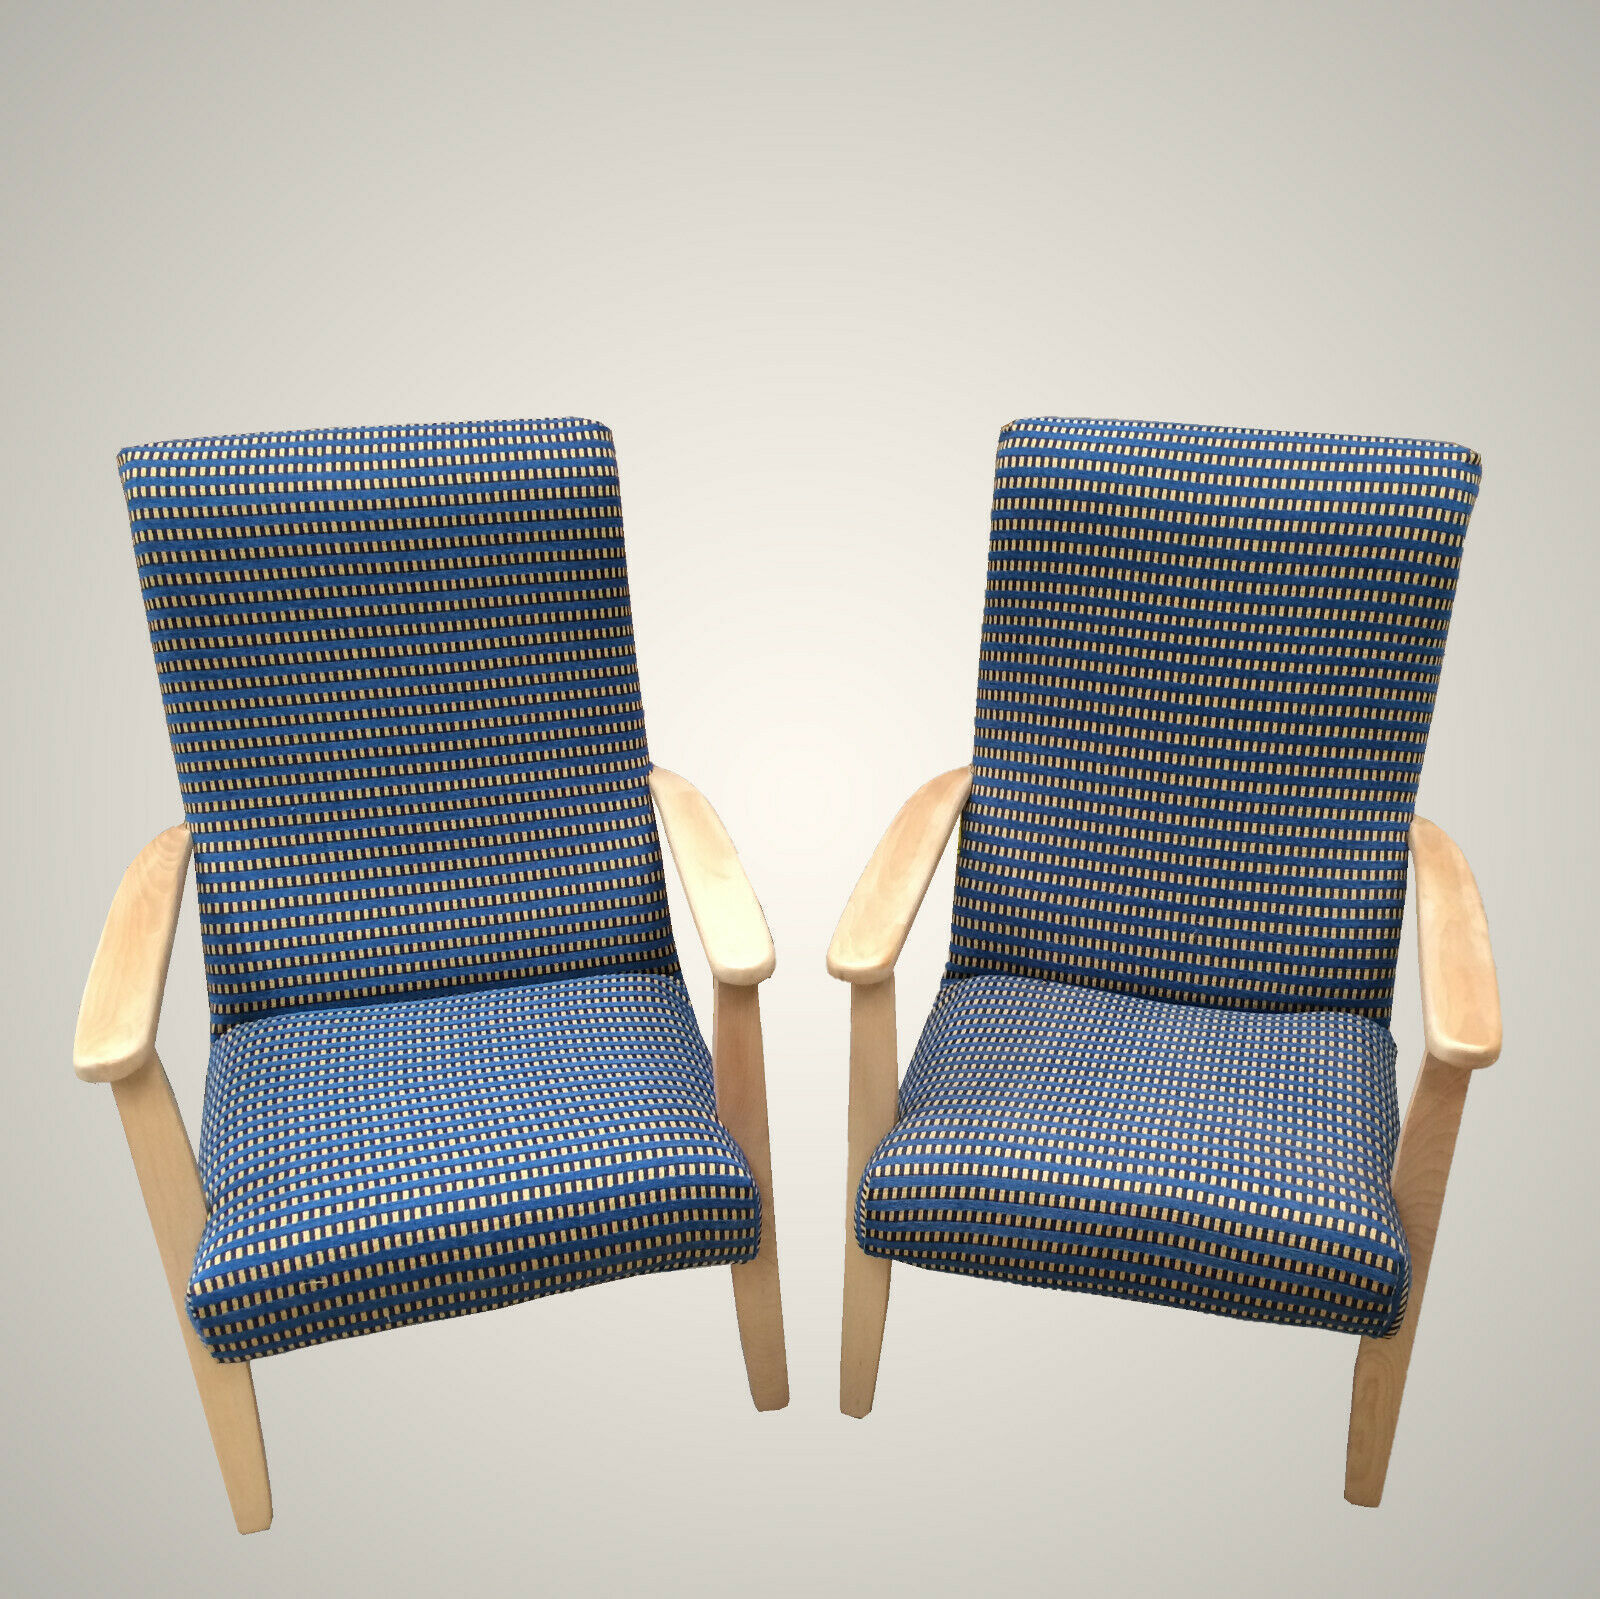 Refurbished Chairs 2 X Refurbished Wooden Framed Arm Chairs In Blue Cream Checks Fire Resistant